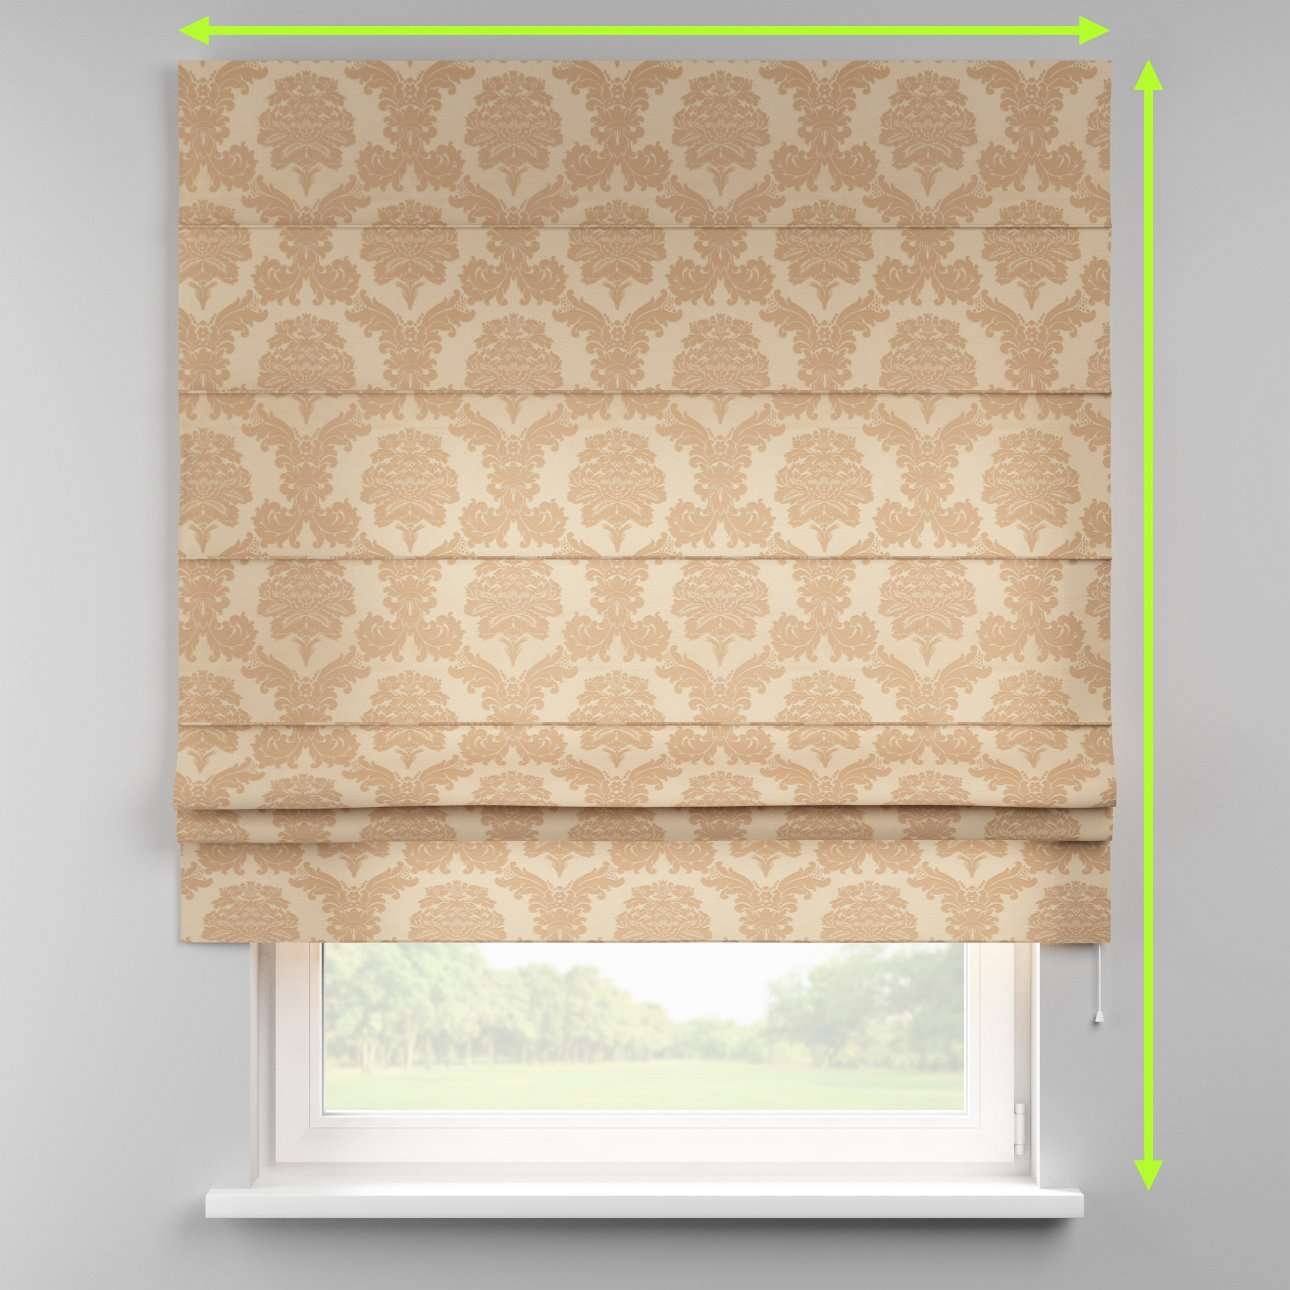 Padva roman blind  in collection Damasco, fabric: 613-04